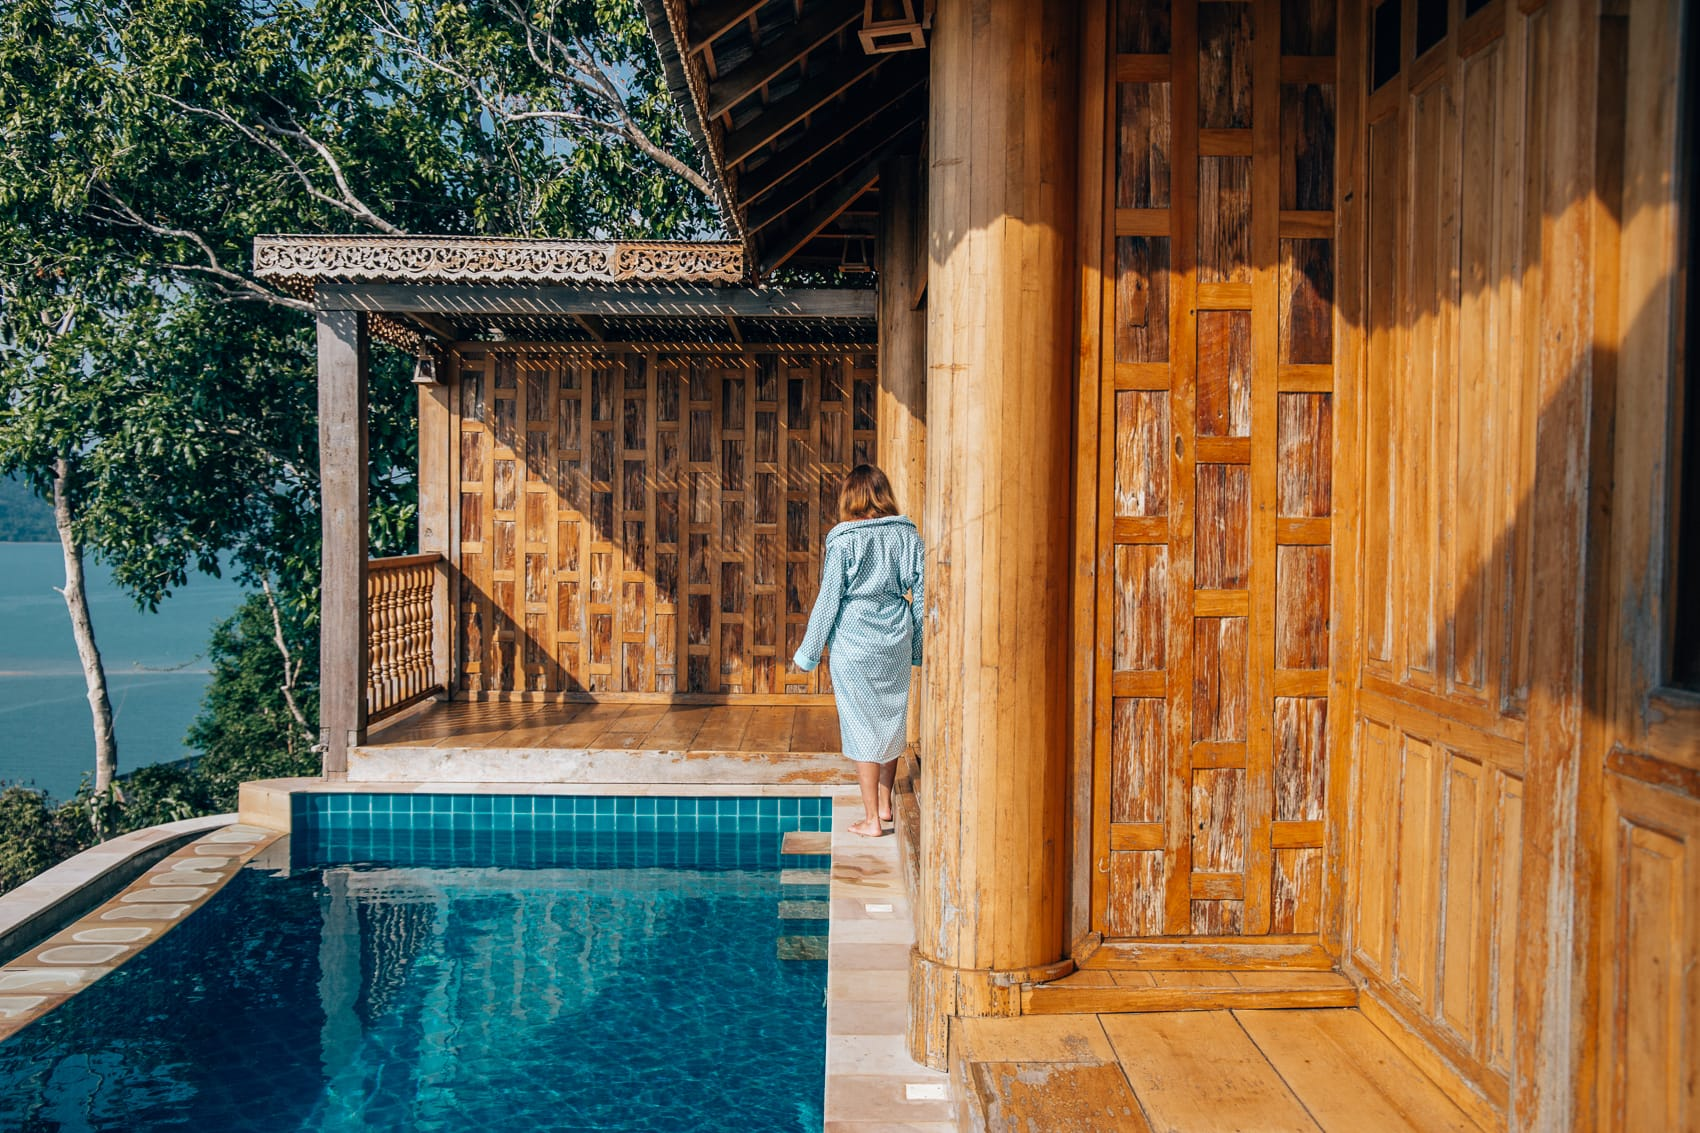 Der perfekte Start in den Urlaubstag mit Miss Möve - Koh Yao Yai Resort mit Pool Villa